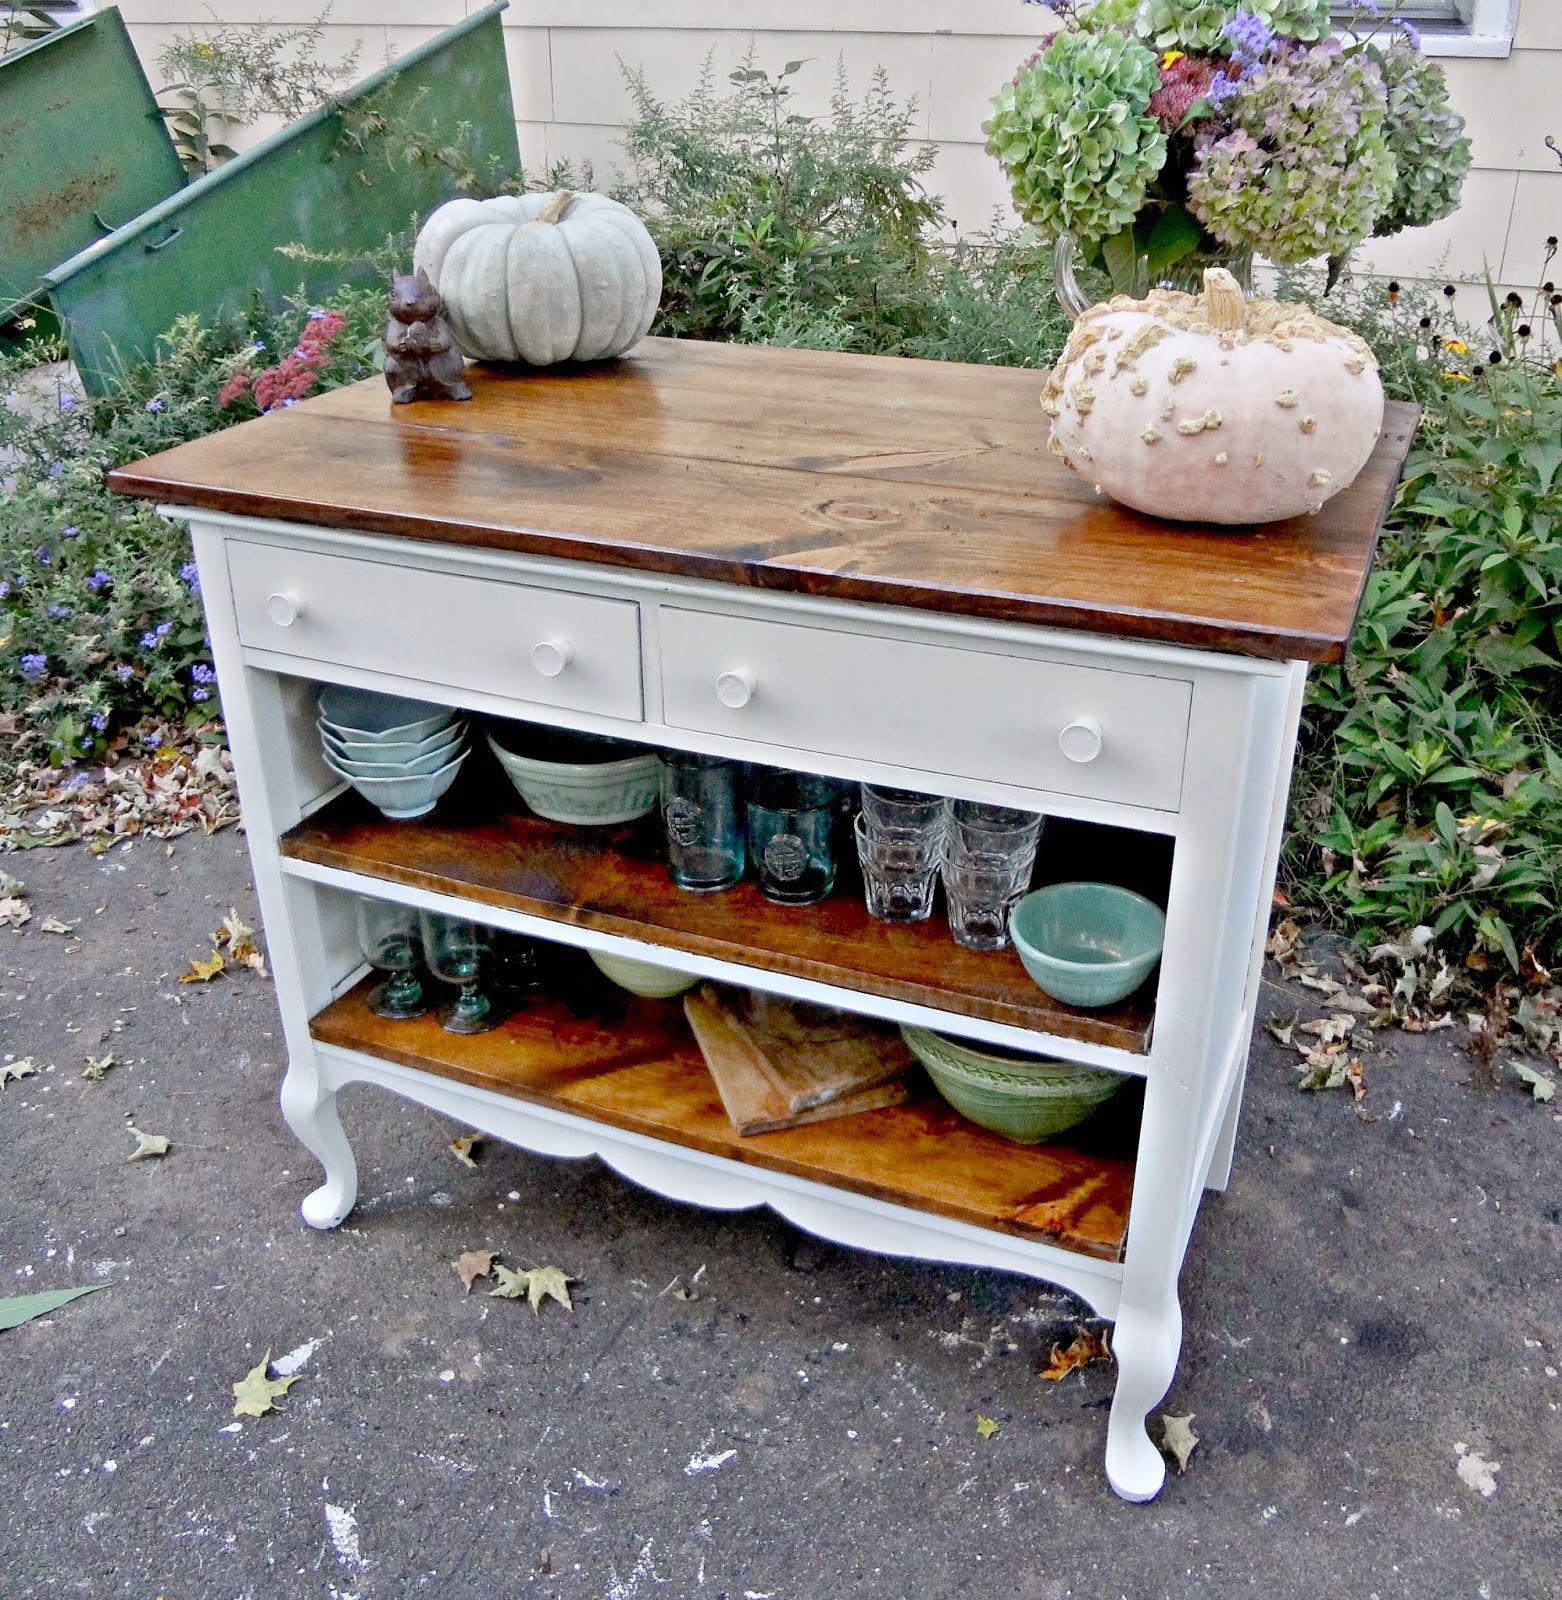 small chests repurposed as kitchen island | Antique Dresser Turned on dresser chair, dresser bedroom, dresser hutch, dresser wine rack, closet island, dresser bar, dresser with many drawers, dresser cabinets, dresser into island, dresser desk, dresser entertainment center, dresser projects, double dresser island, dresser storage, dresser in kitchen,